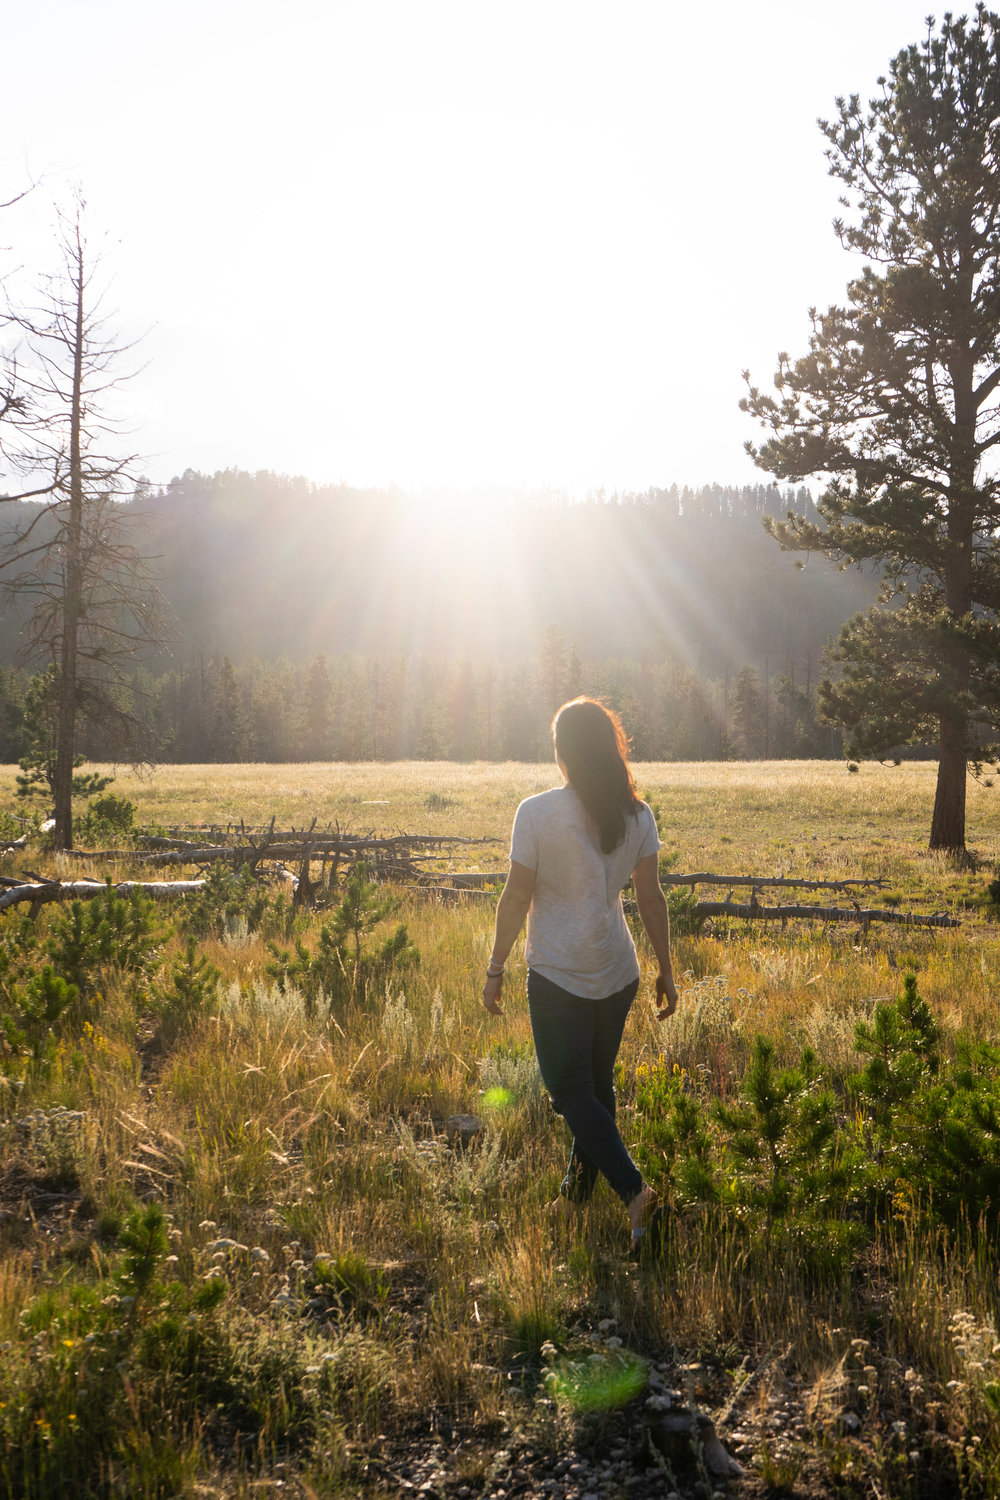 Walking into the Sunset. Rocky Mountain National Park / Glacier Basin Campground 2018